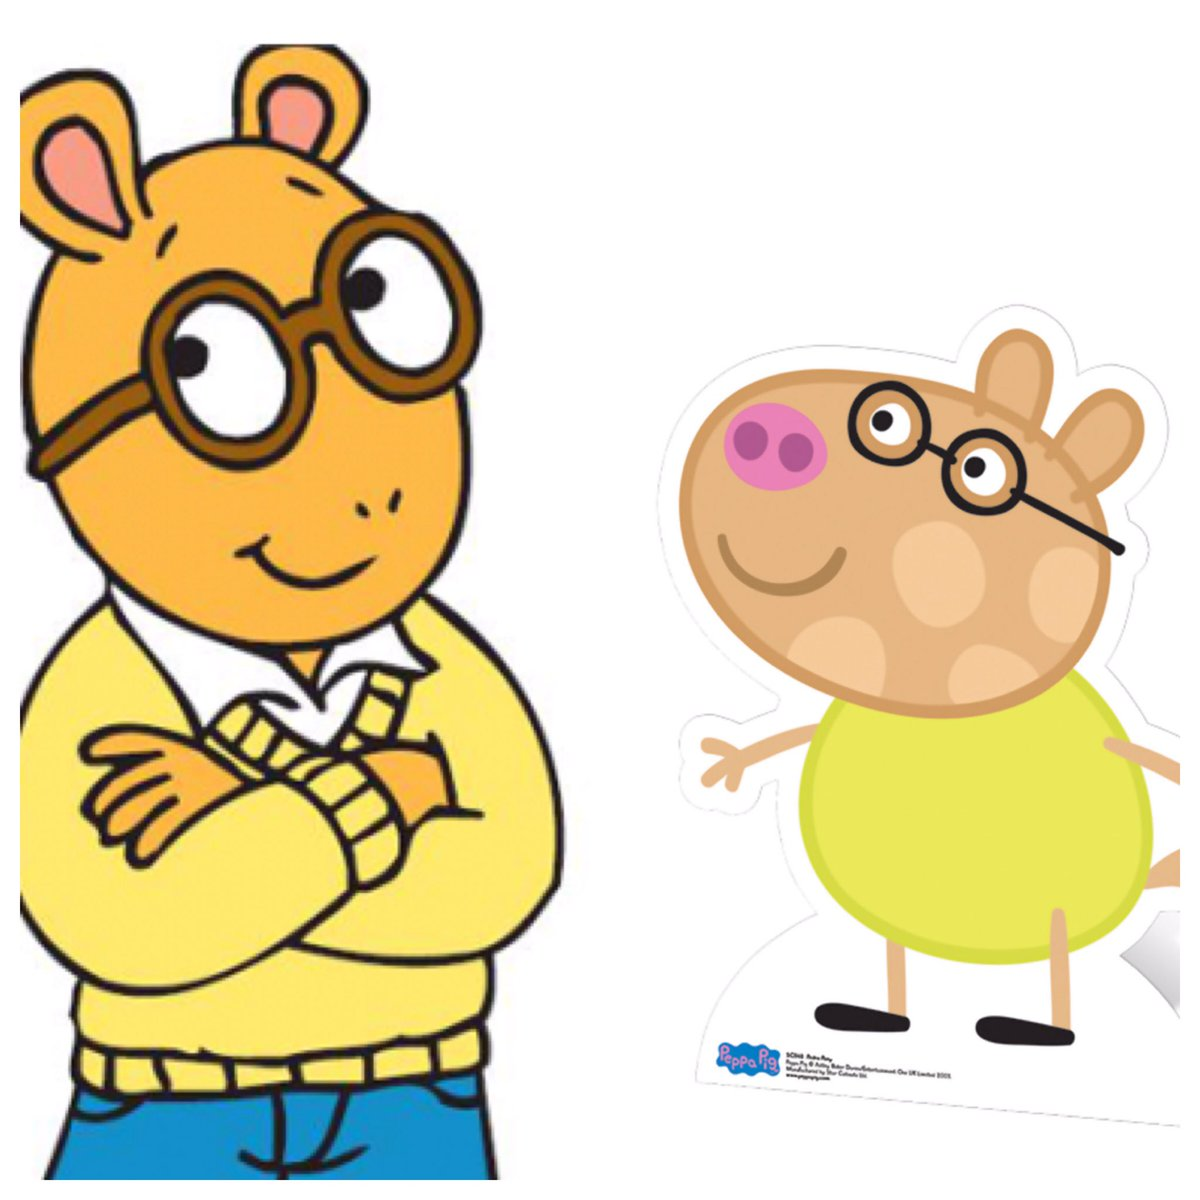 I&#39;m so relieved #Arthur had an agent who could get him that role on #PeppaPig. #InstantFanTheory #Cartoons #Clones<br>http://pic.twitter.com/nEw4EVdqka